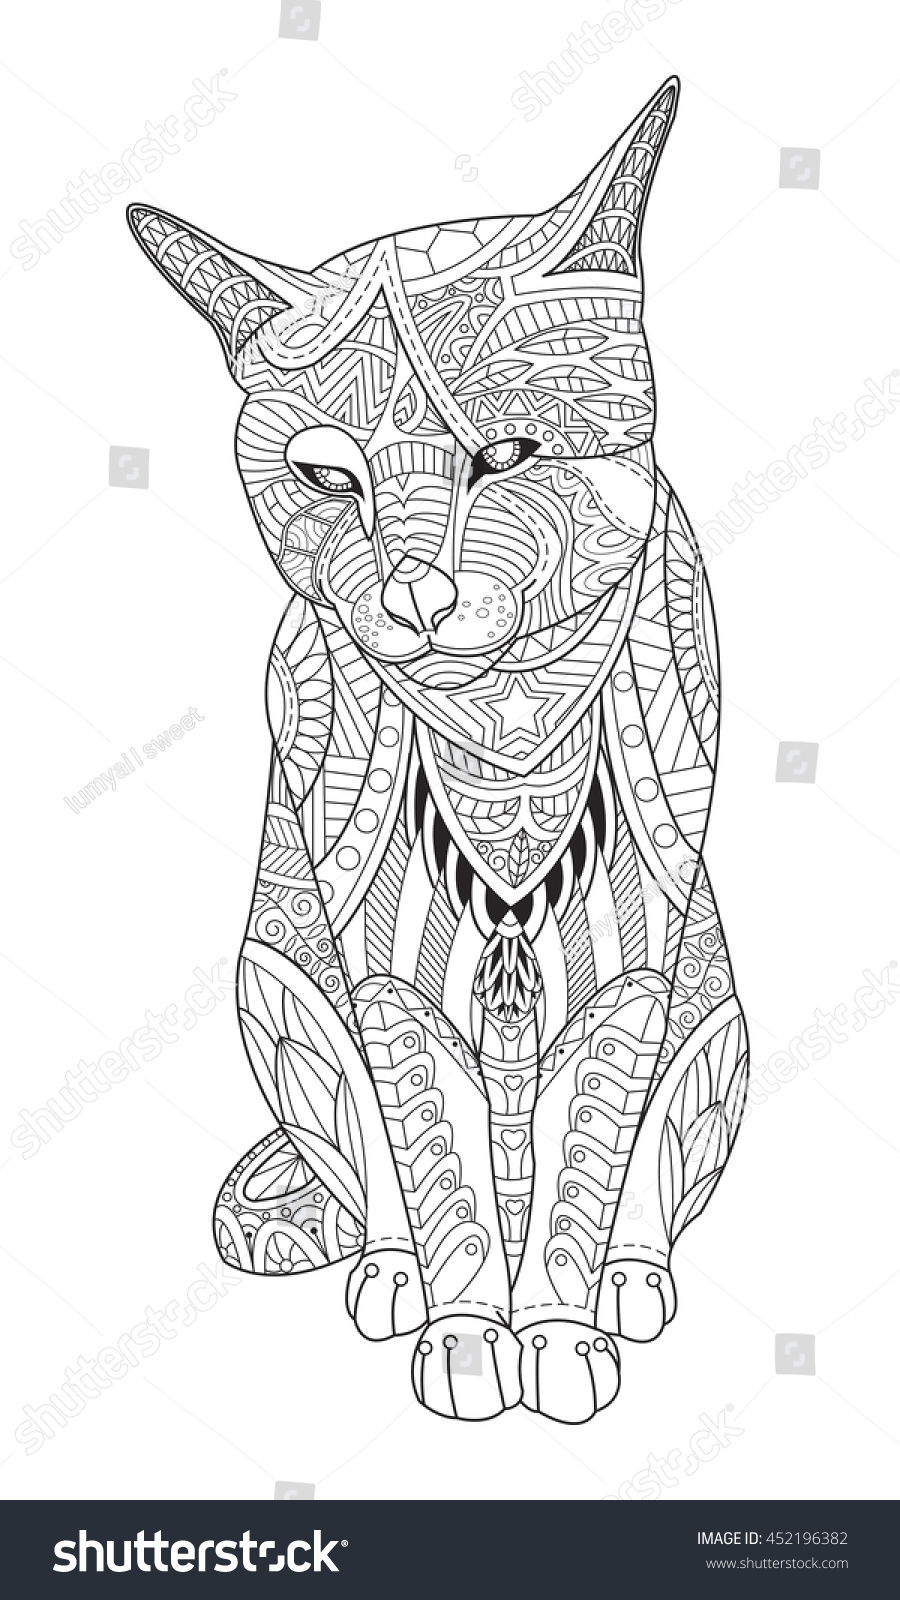 Drawing Cat For The Coloring Book Adults Vector Illustration In Zentangle Style Isolated